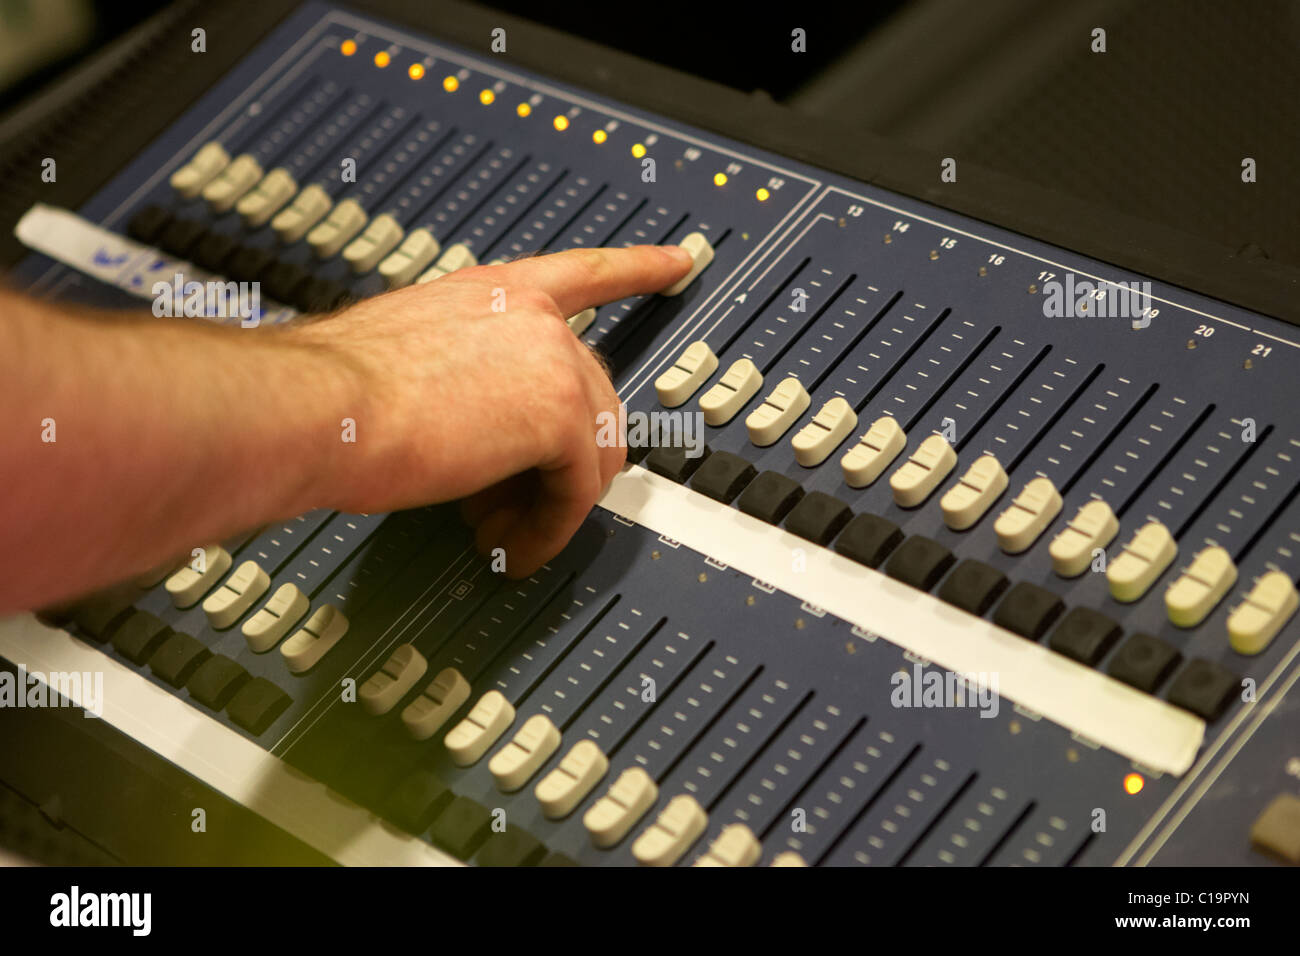 lighting engineer adjusting sliders on a lighting mixing desk in a theatre concert hall & lighting engineer adjusting sliders on a lighting mixing desk in a ... azcodes.com